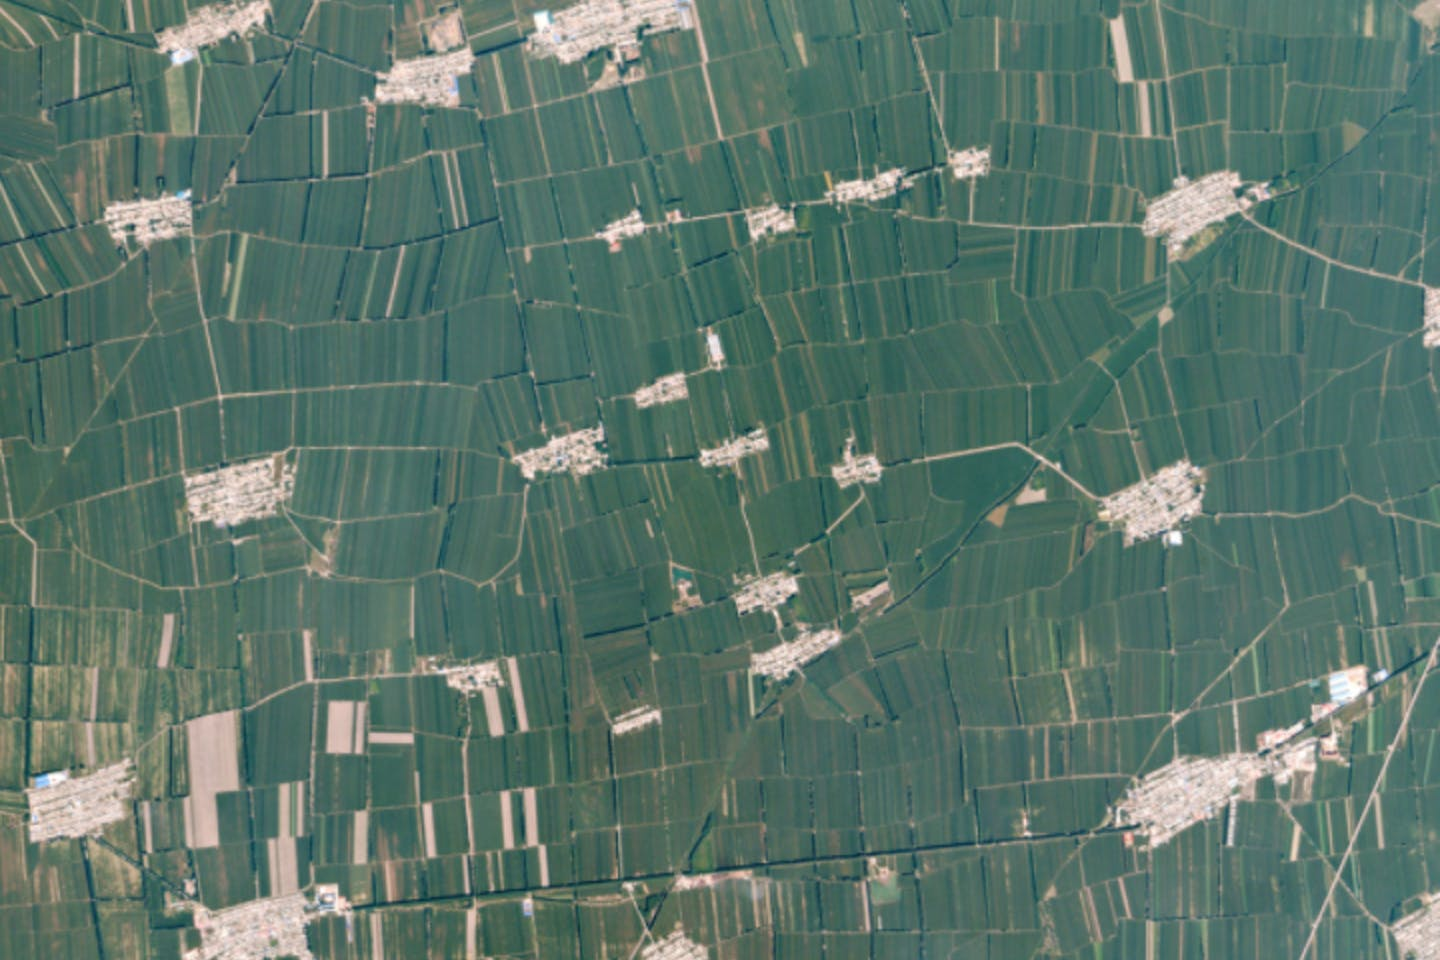 Farming in China seen from satellite